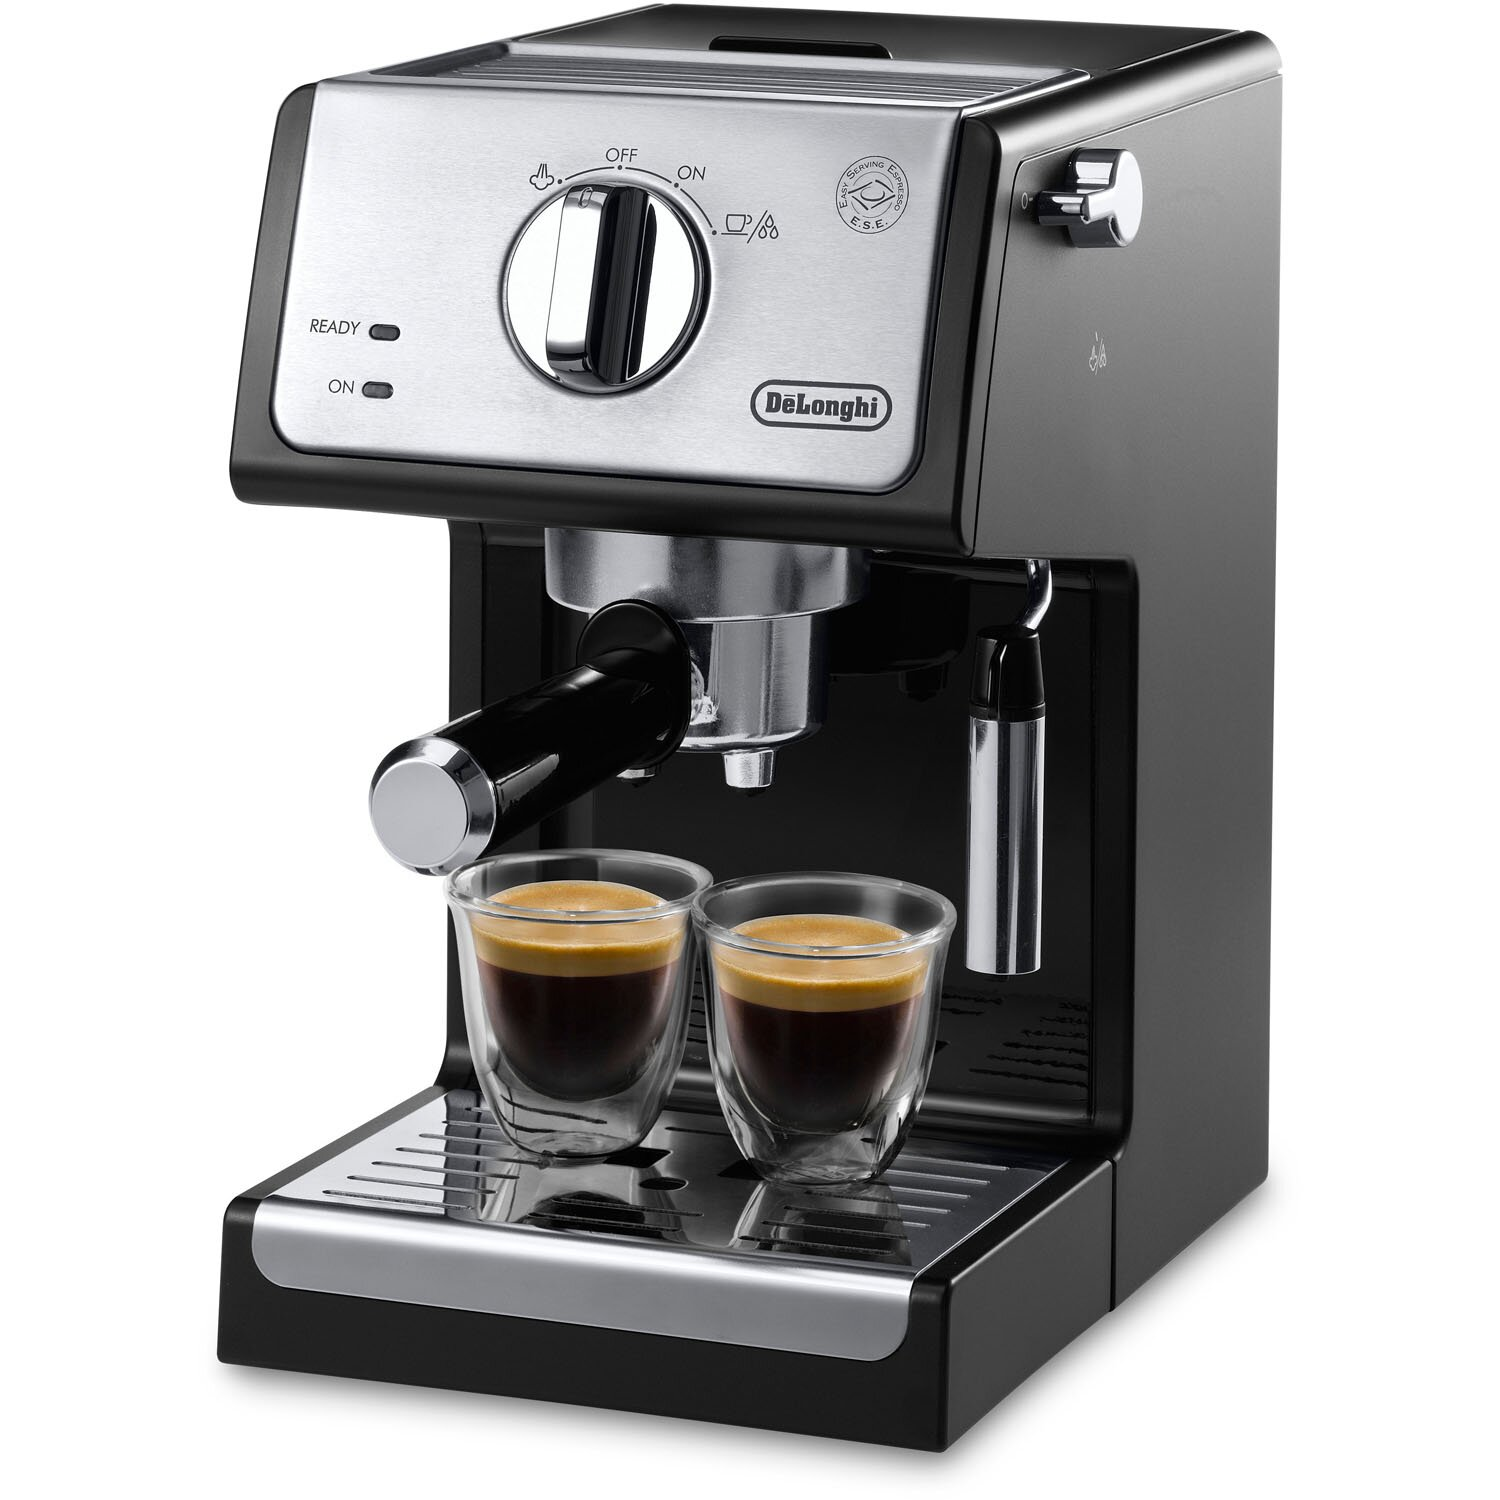 Delonghi 15 Bar Pump Coffee Espresso Maker Amp Reviews Wayfair